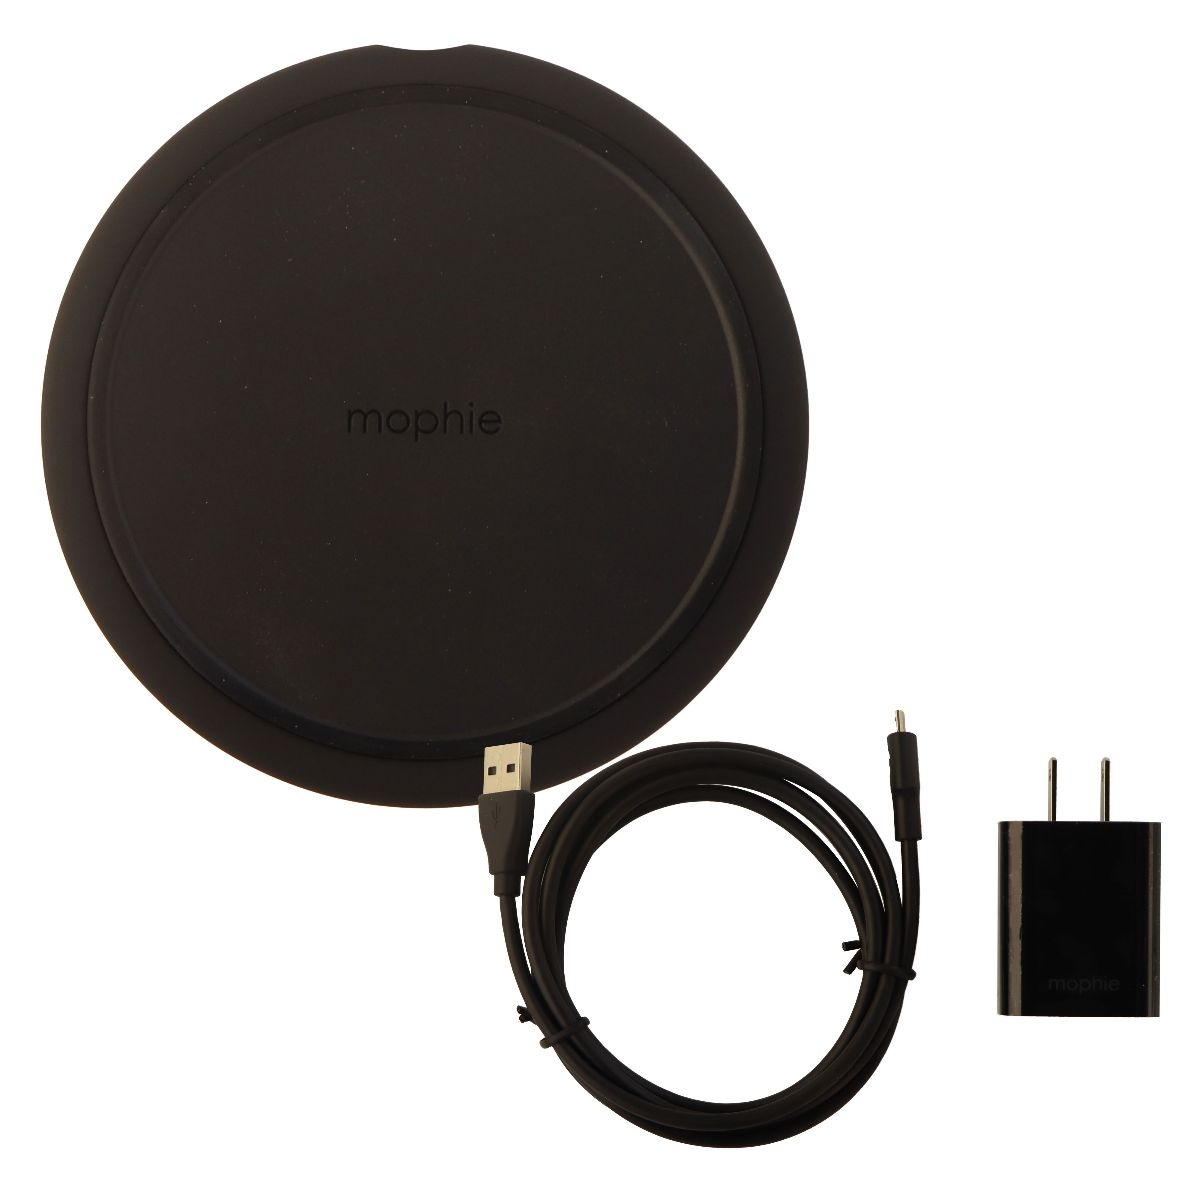 Mophie Charge Stream Pad Universal Qi Fast Charge Wireless Charging Pad Black Refurbished Walmart Com Walmart Com Up to 7.5w fast charge: mophie charge stream pad universal qi fast charge wireless charging pad black refurbished walmart com